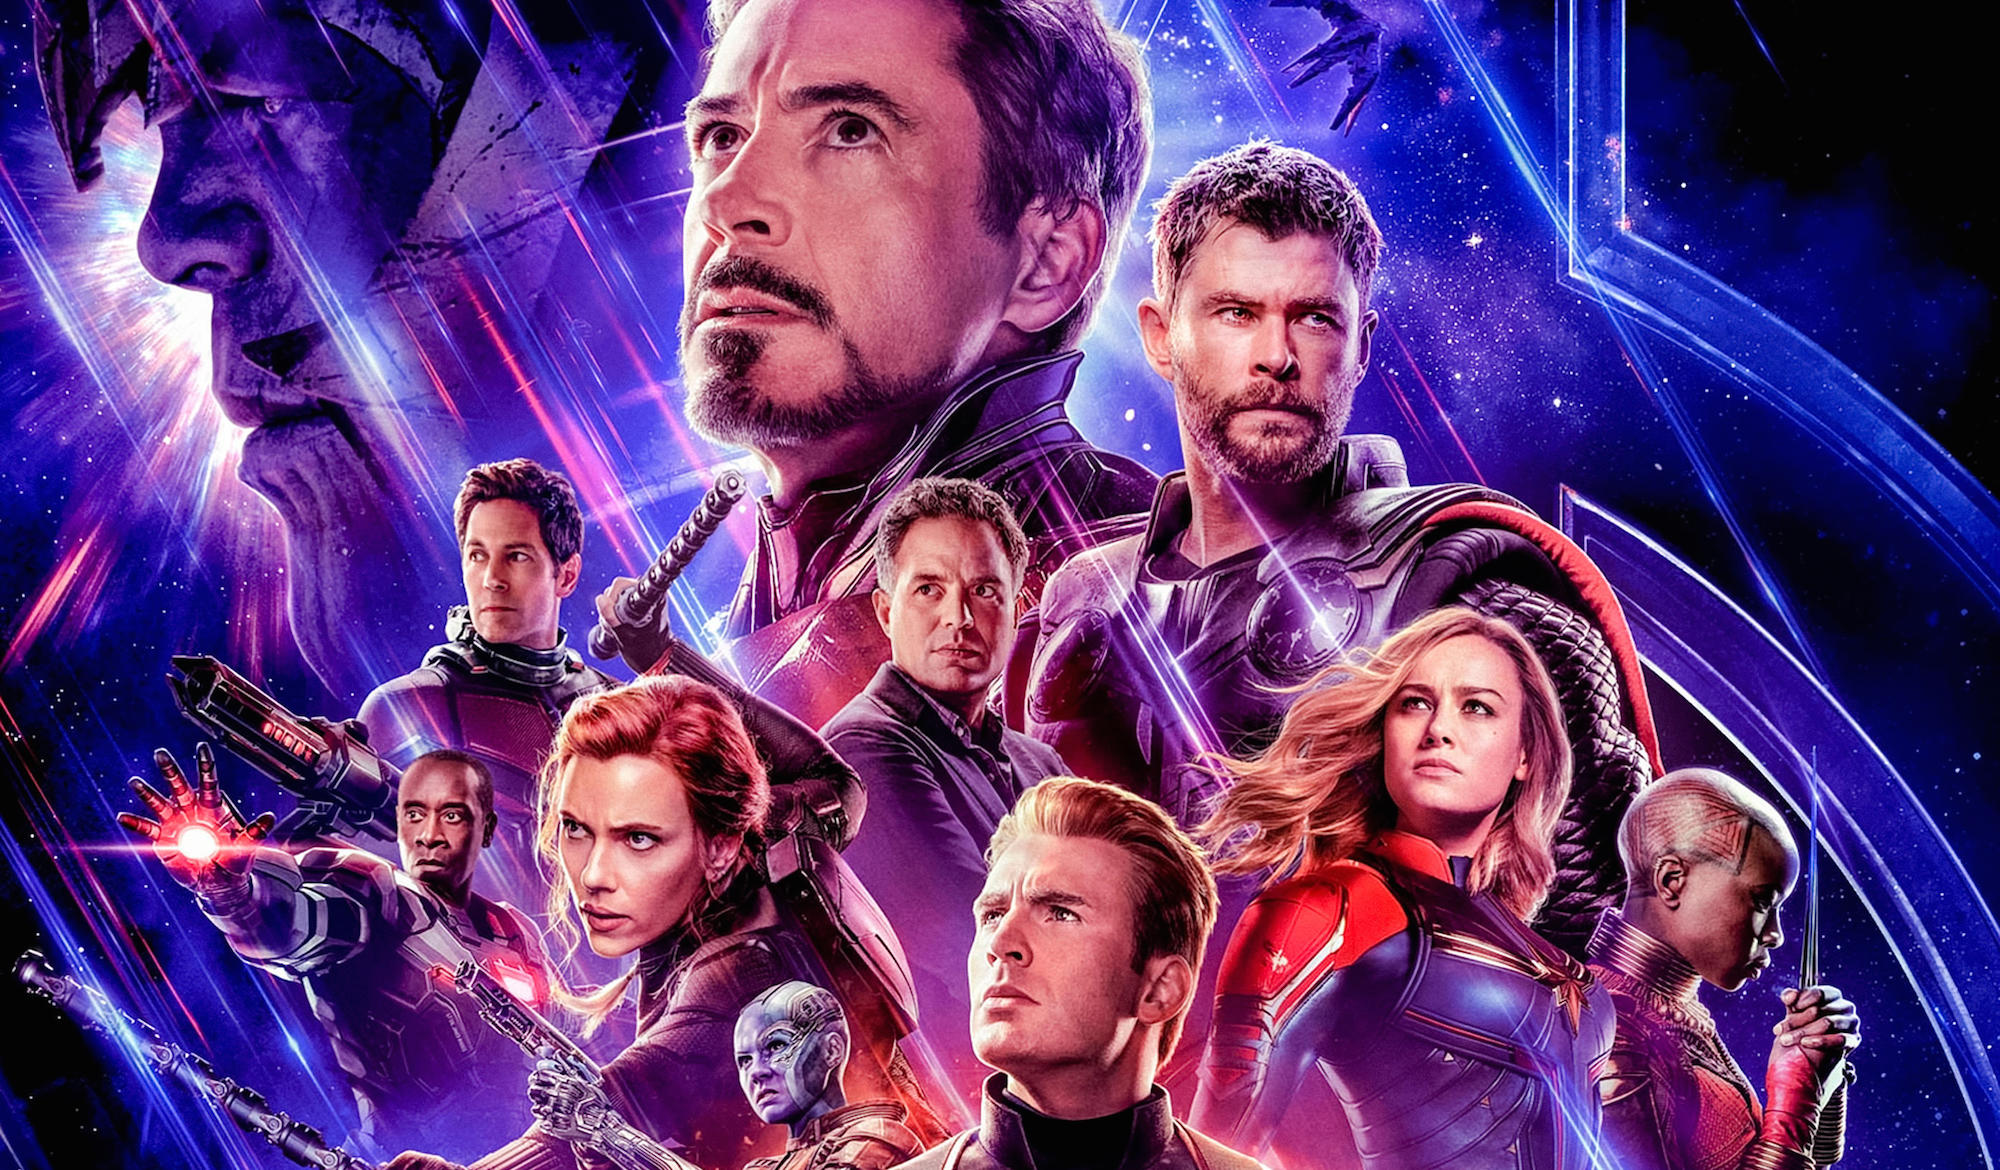 'Avengers: Endgame' has achieved an impressive Rotten Tomatoes score